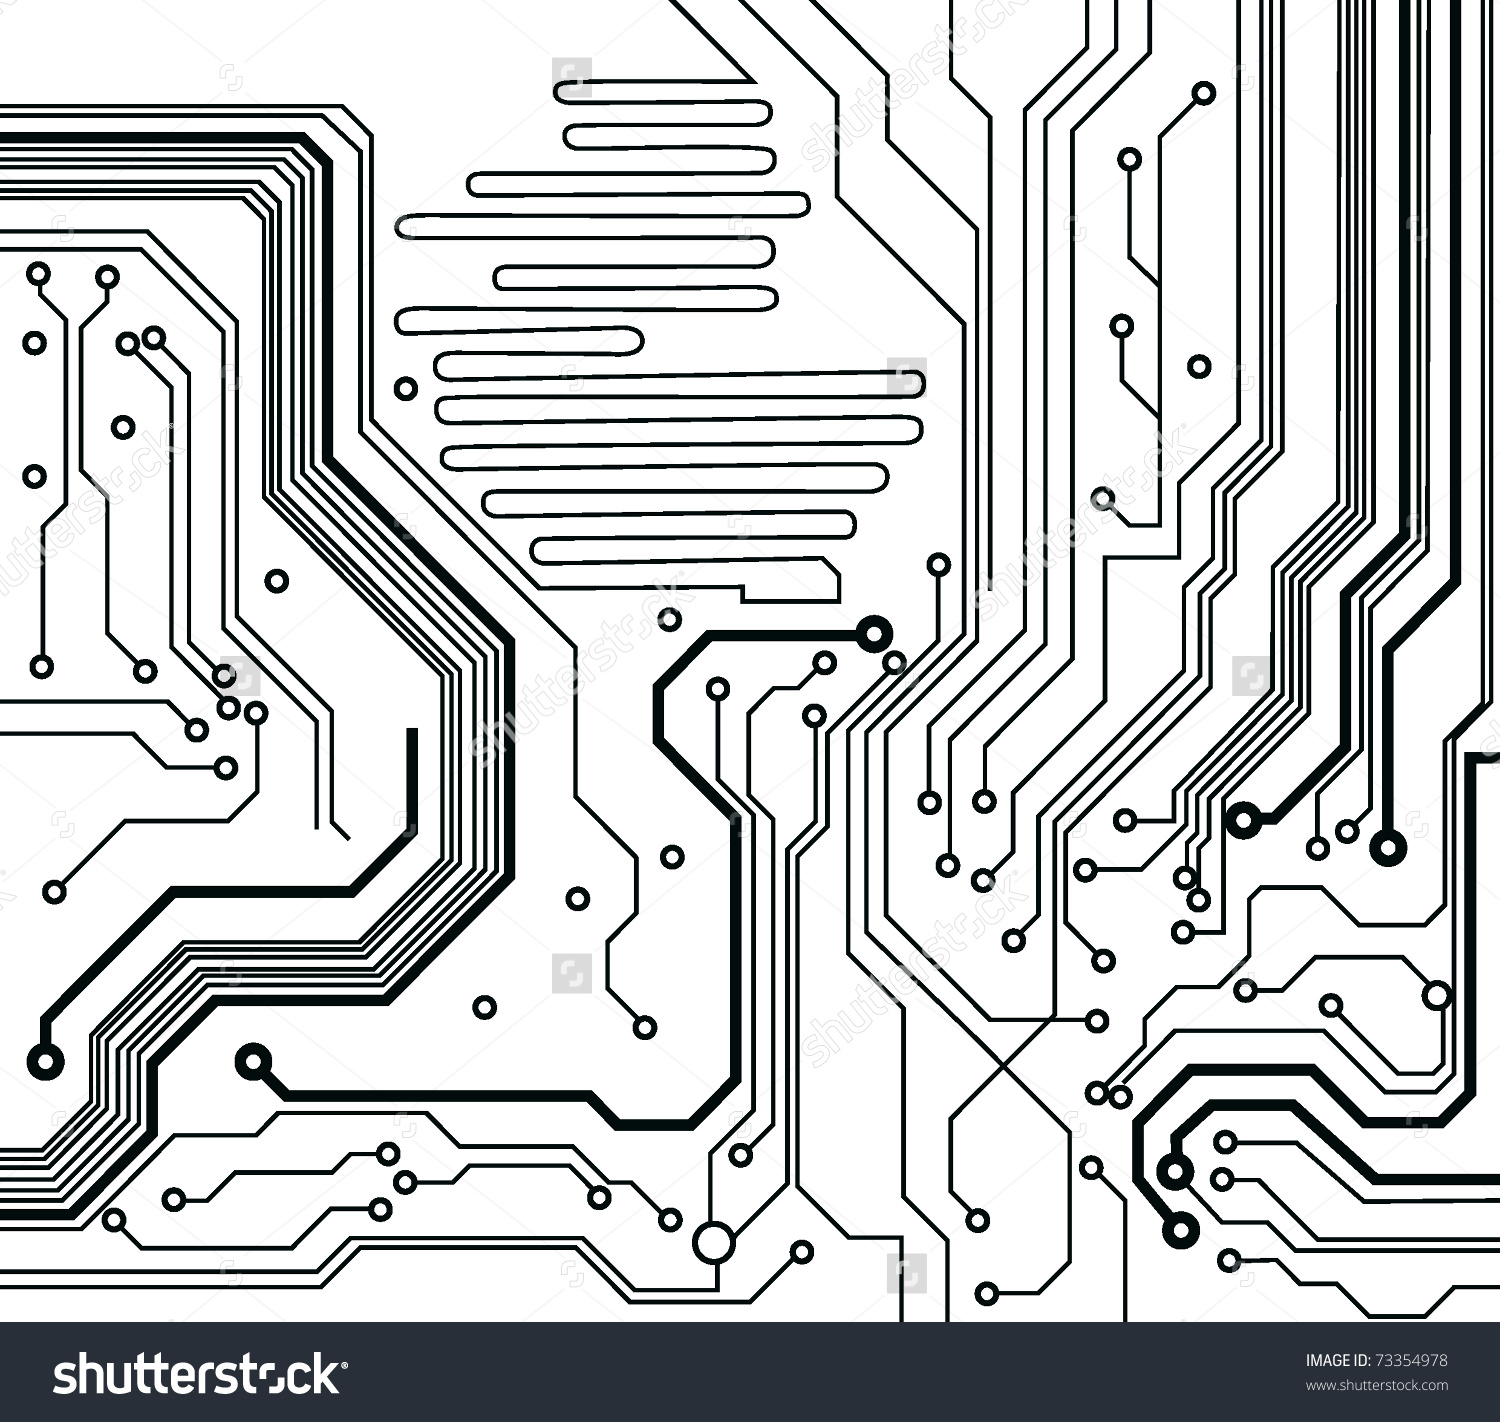 black and white circuit board clipart - Clipground